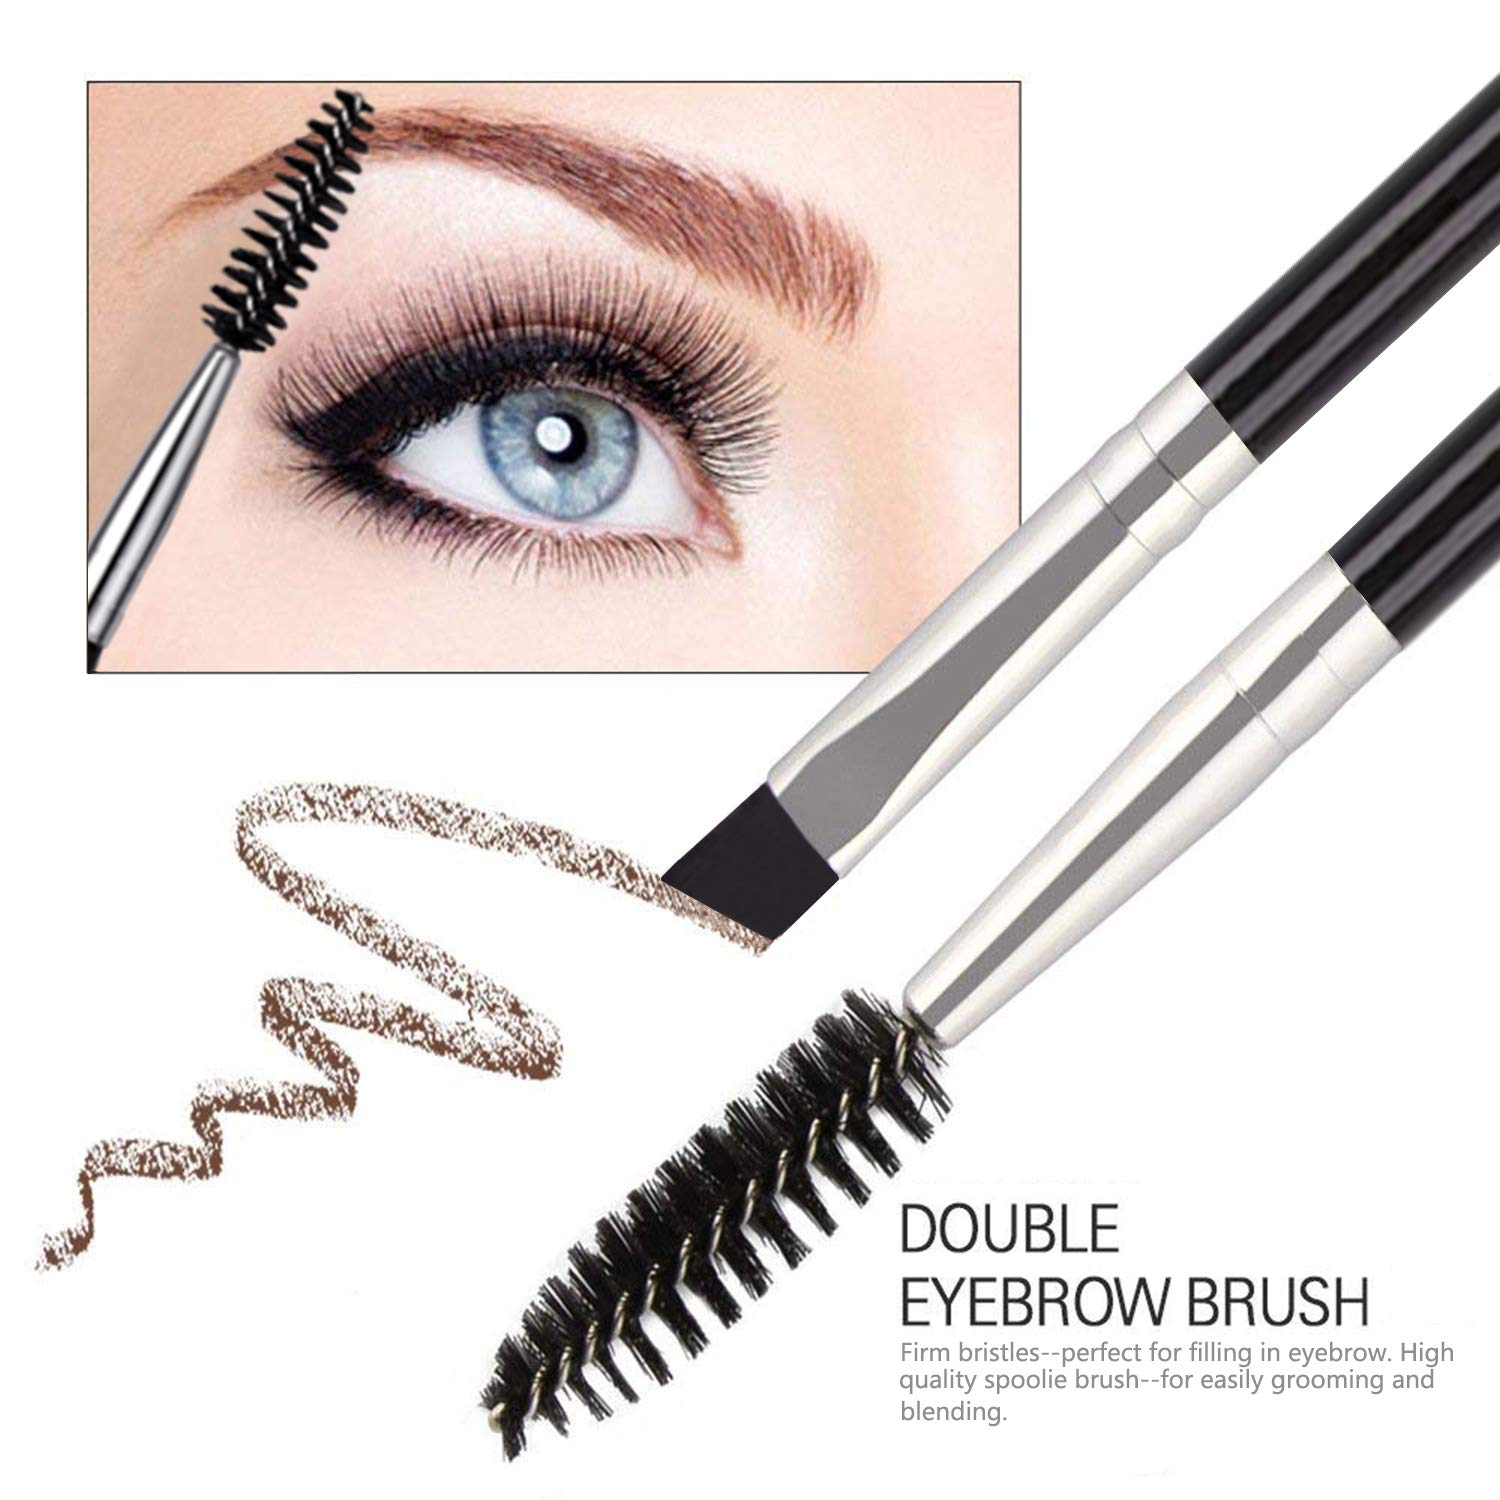 FITDON Eyebrow Grooming Set, Professional Slant Tip Tweezers & Curved Stainless Steel Scissors & 3PCS Brow Razors Trimmer & Duo Angled Eyebrow Brush with Spoolie: Beauty